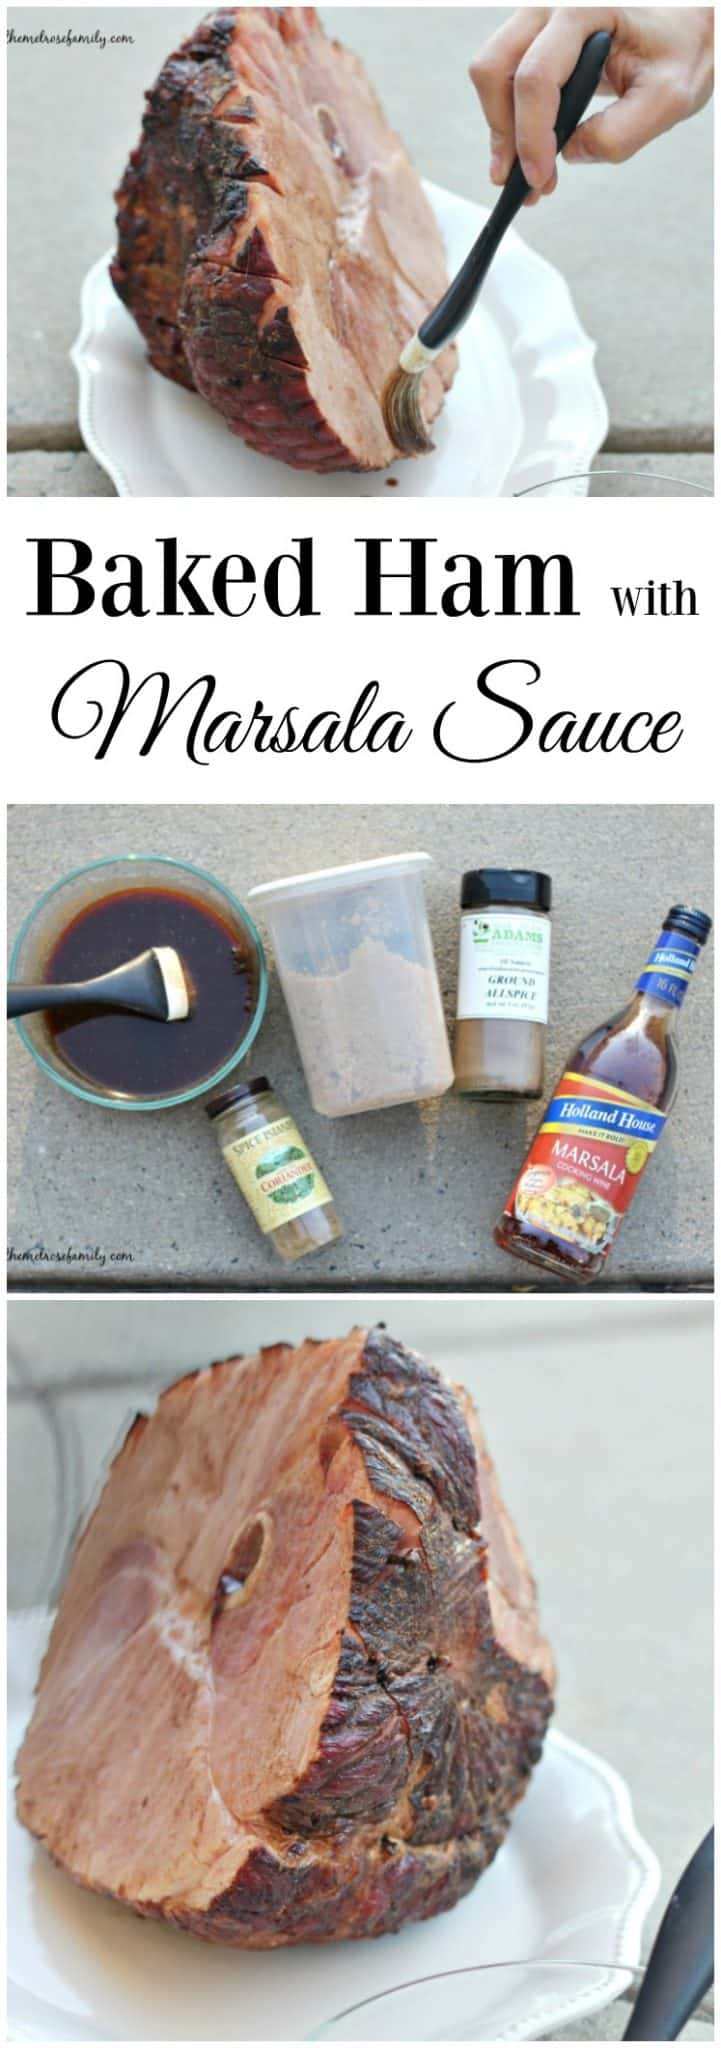 Ready for an easy special occasion dinner? This Baked Ham with Marsala Sauce recipe is as easy as it gets.